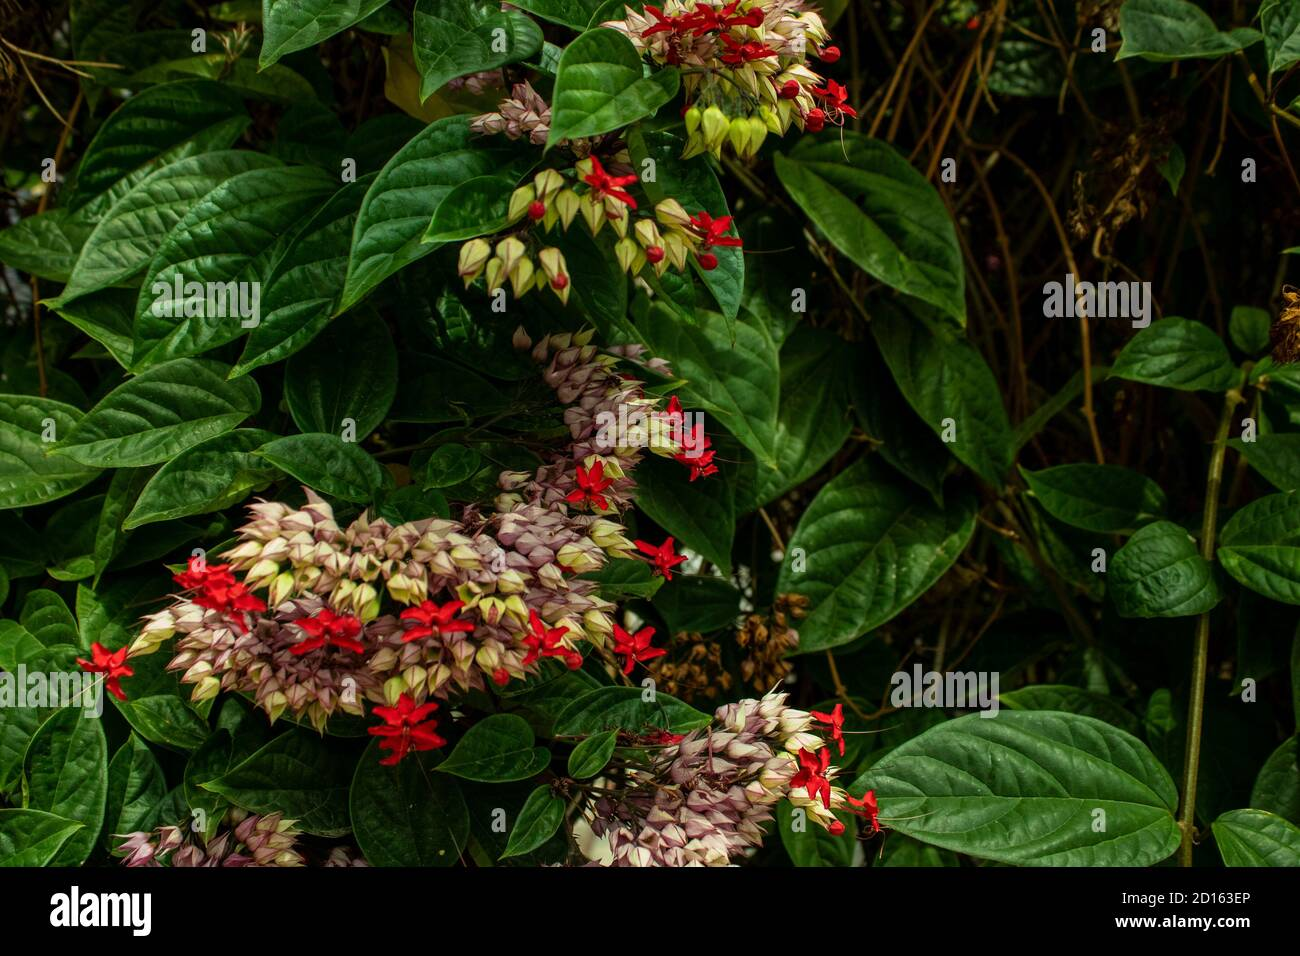 Milkweed - Asclepias Currassavica  red flowers with purple tones lilas pink and white tropical, wild and wild exotic, small flowers grouped Stock Photo